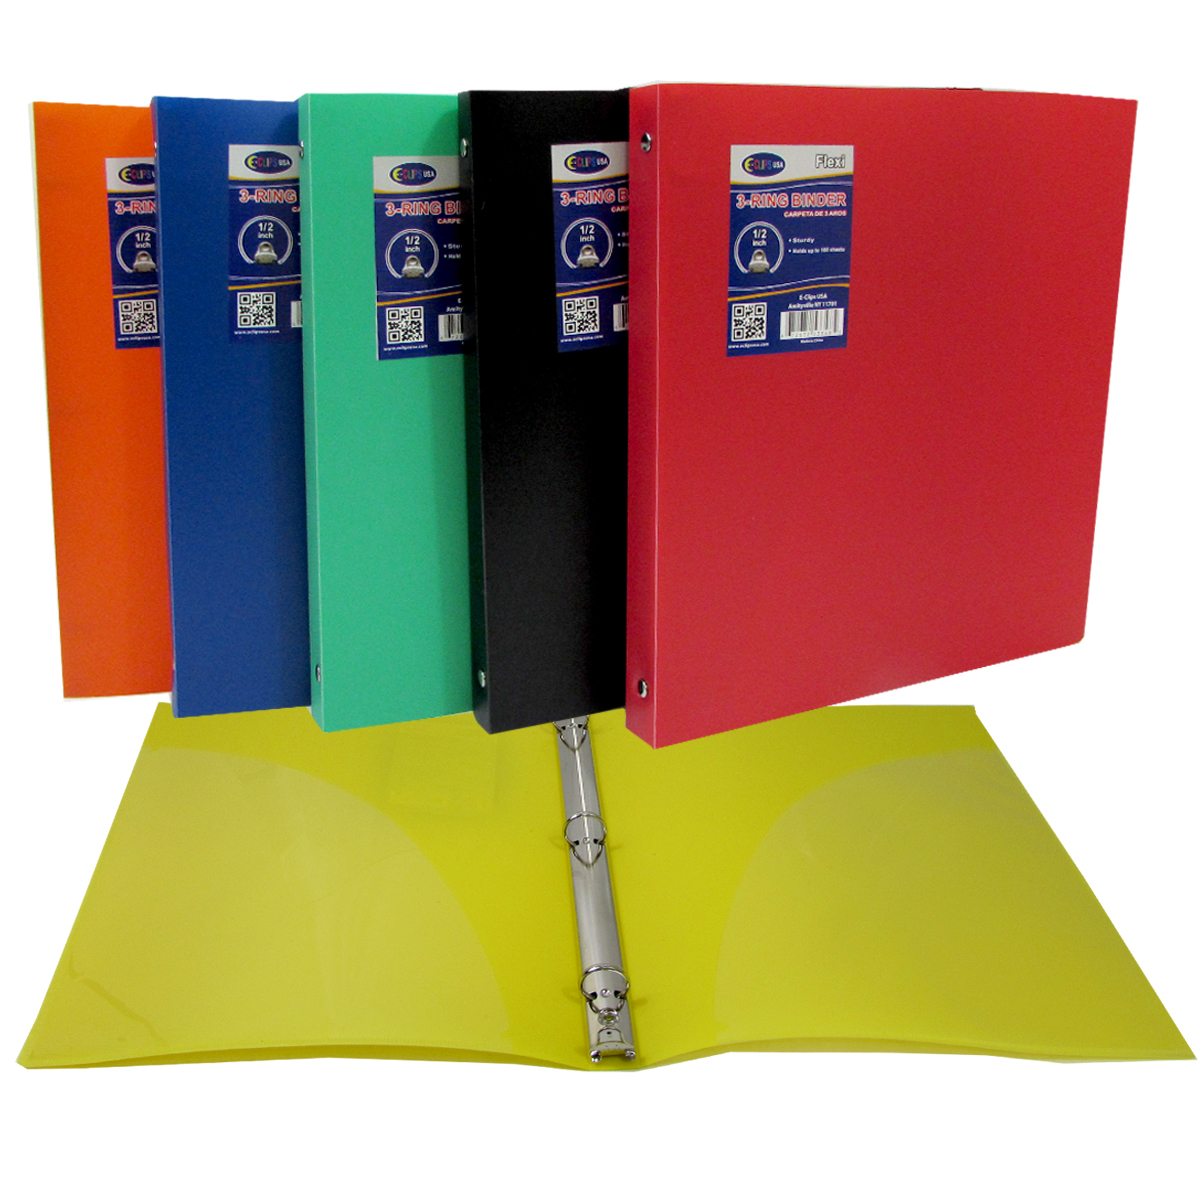 1 Inch 3 RING Binder in Assorted Colors (1909820)